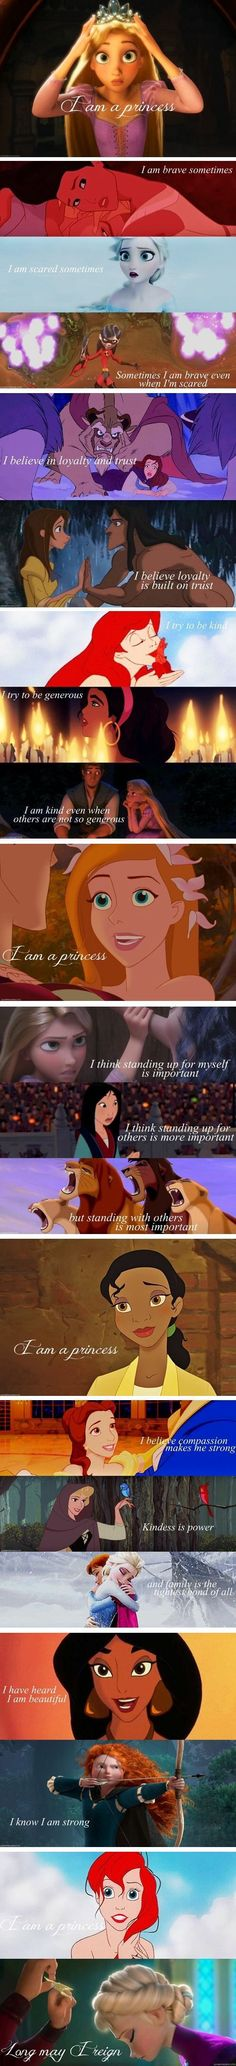 Definition of a princess